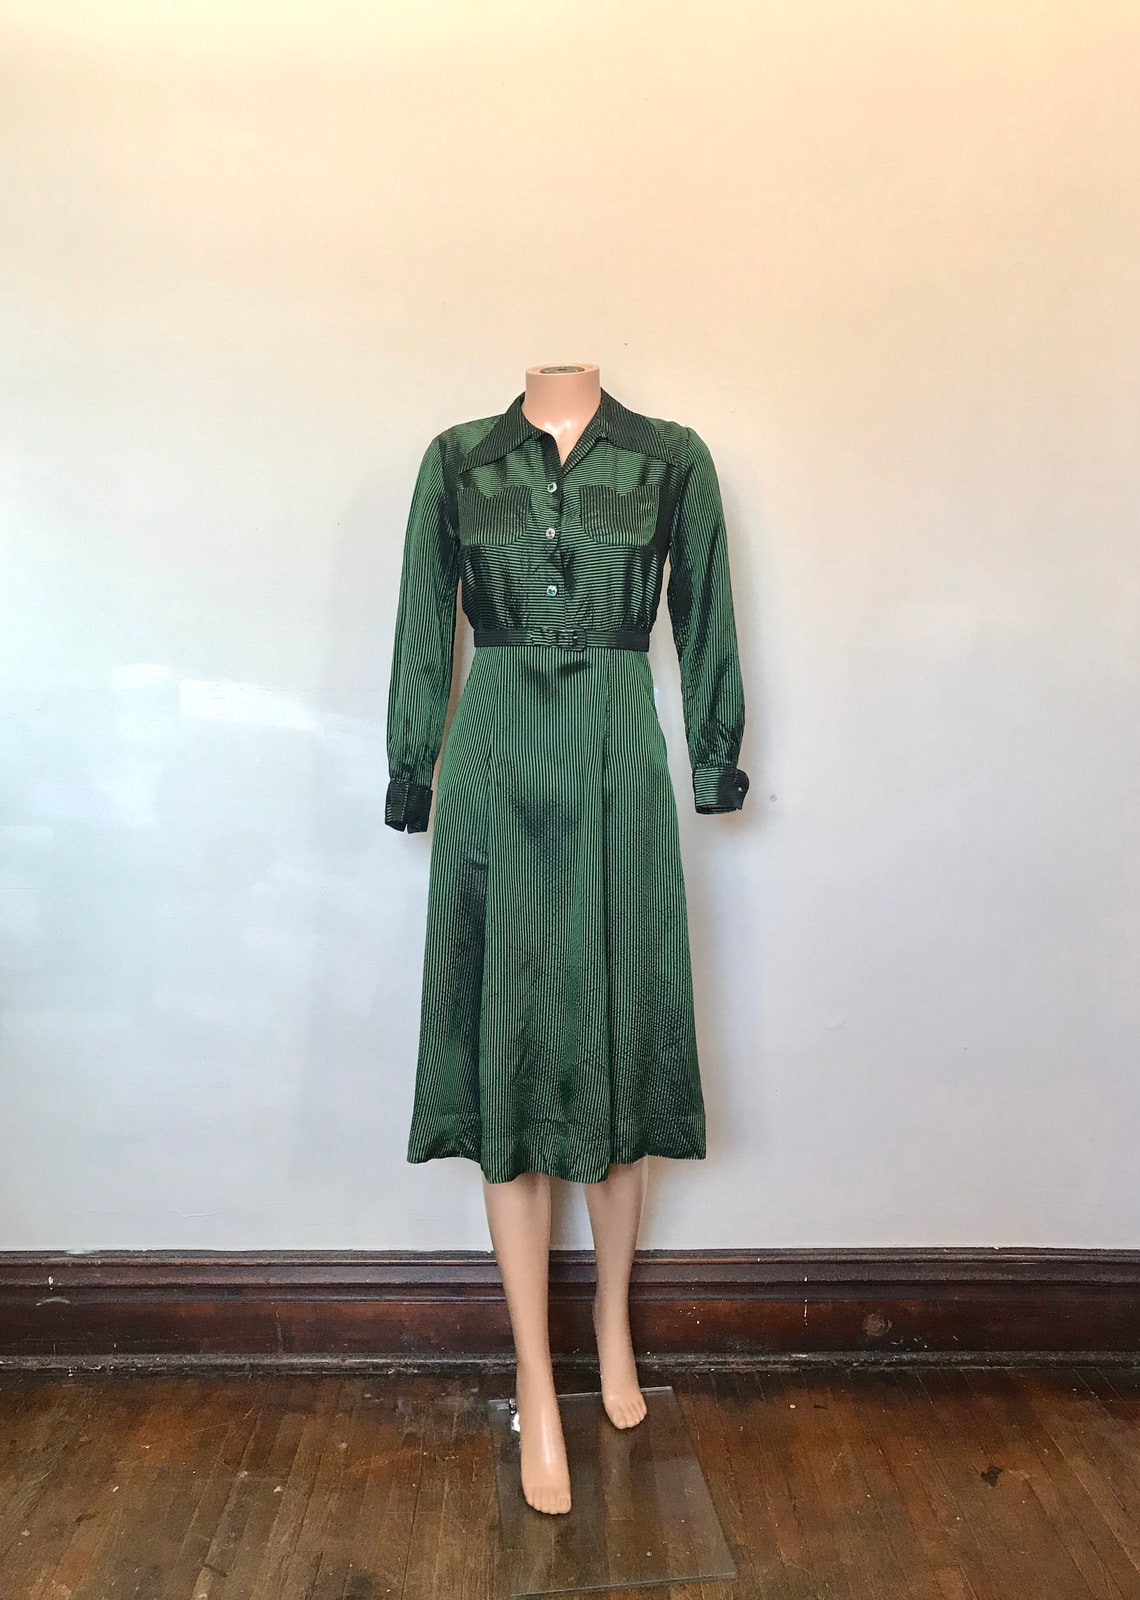 1930s Green & Black Pinstriped Satin Dress sz S